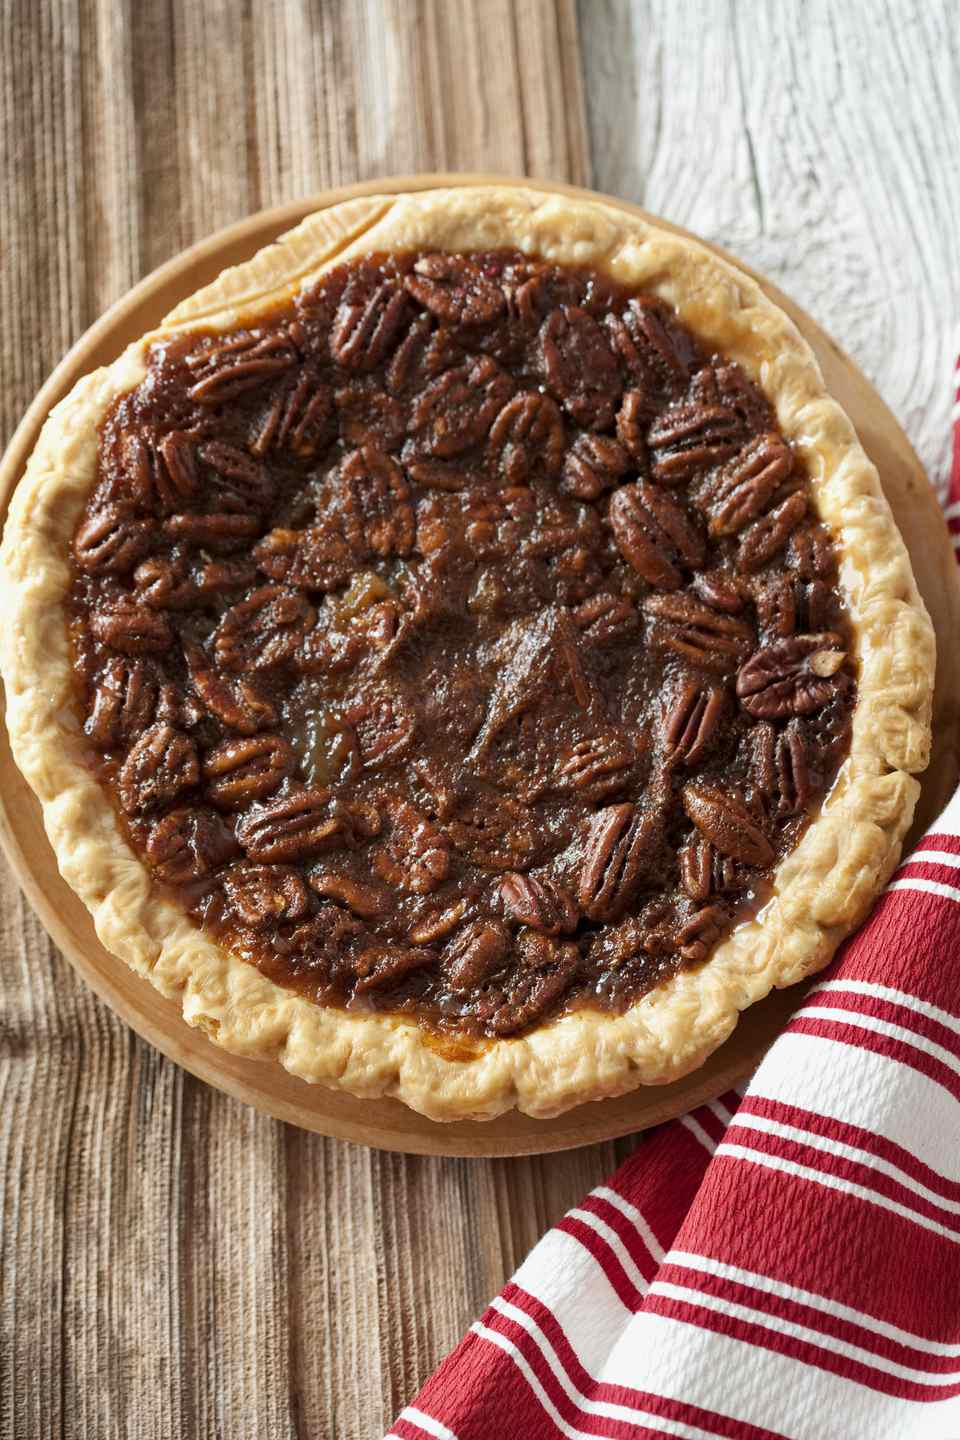 Pecan pie on tablecloth